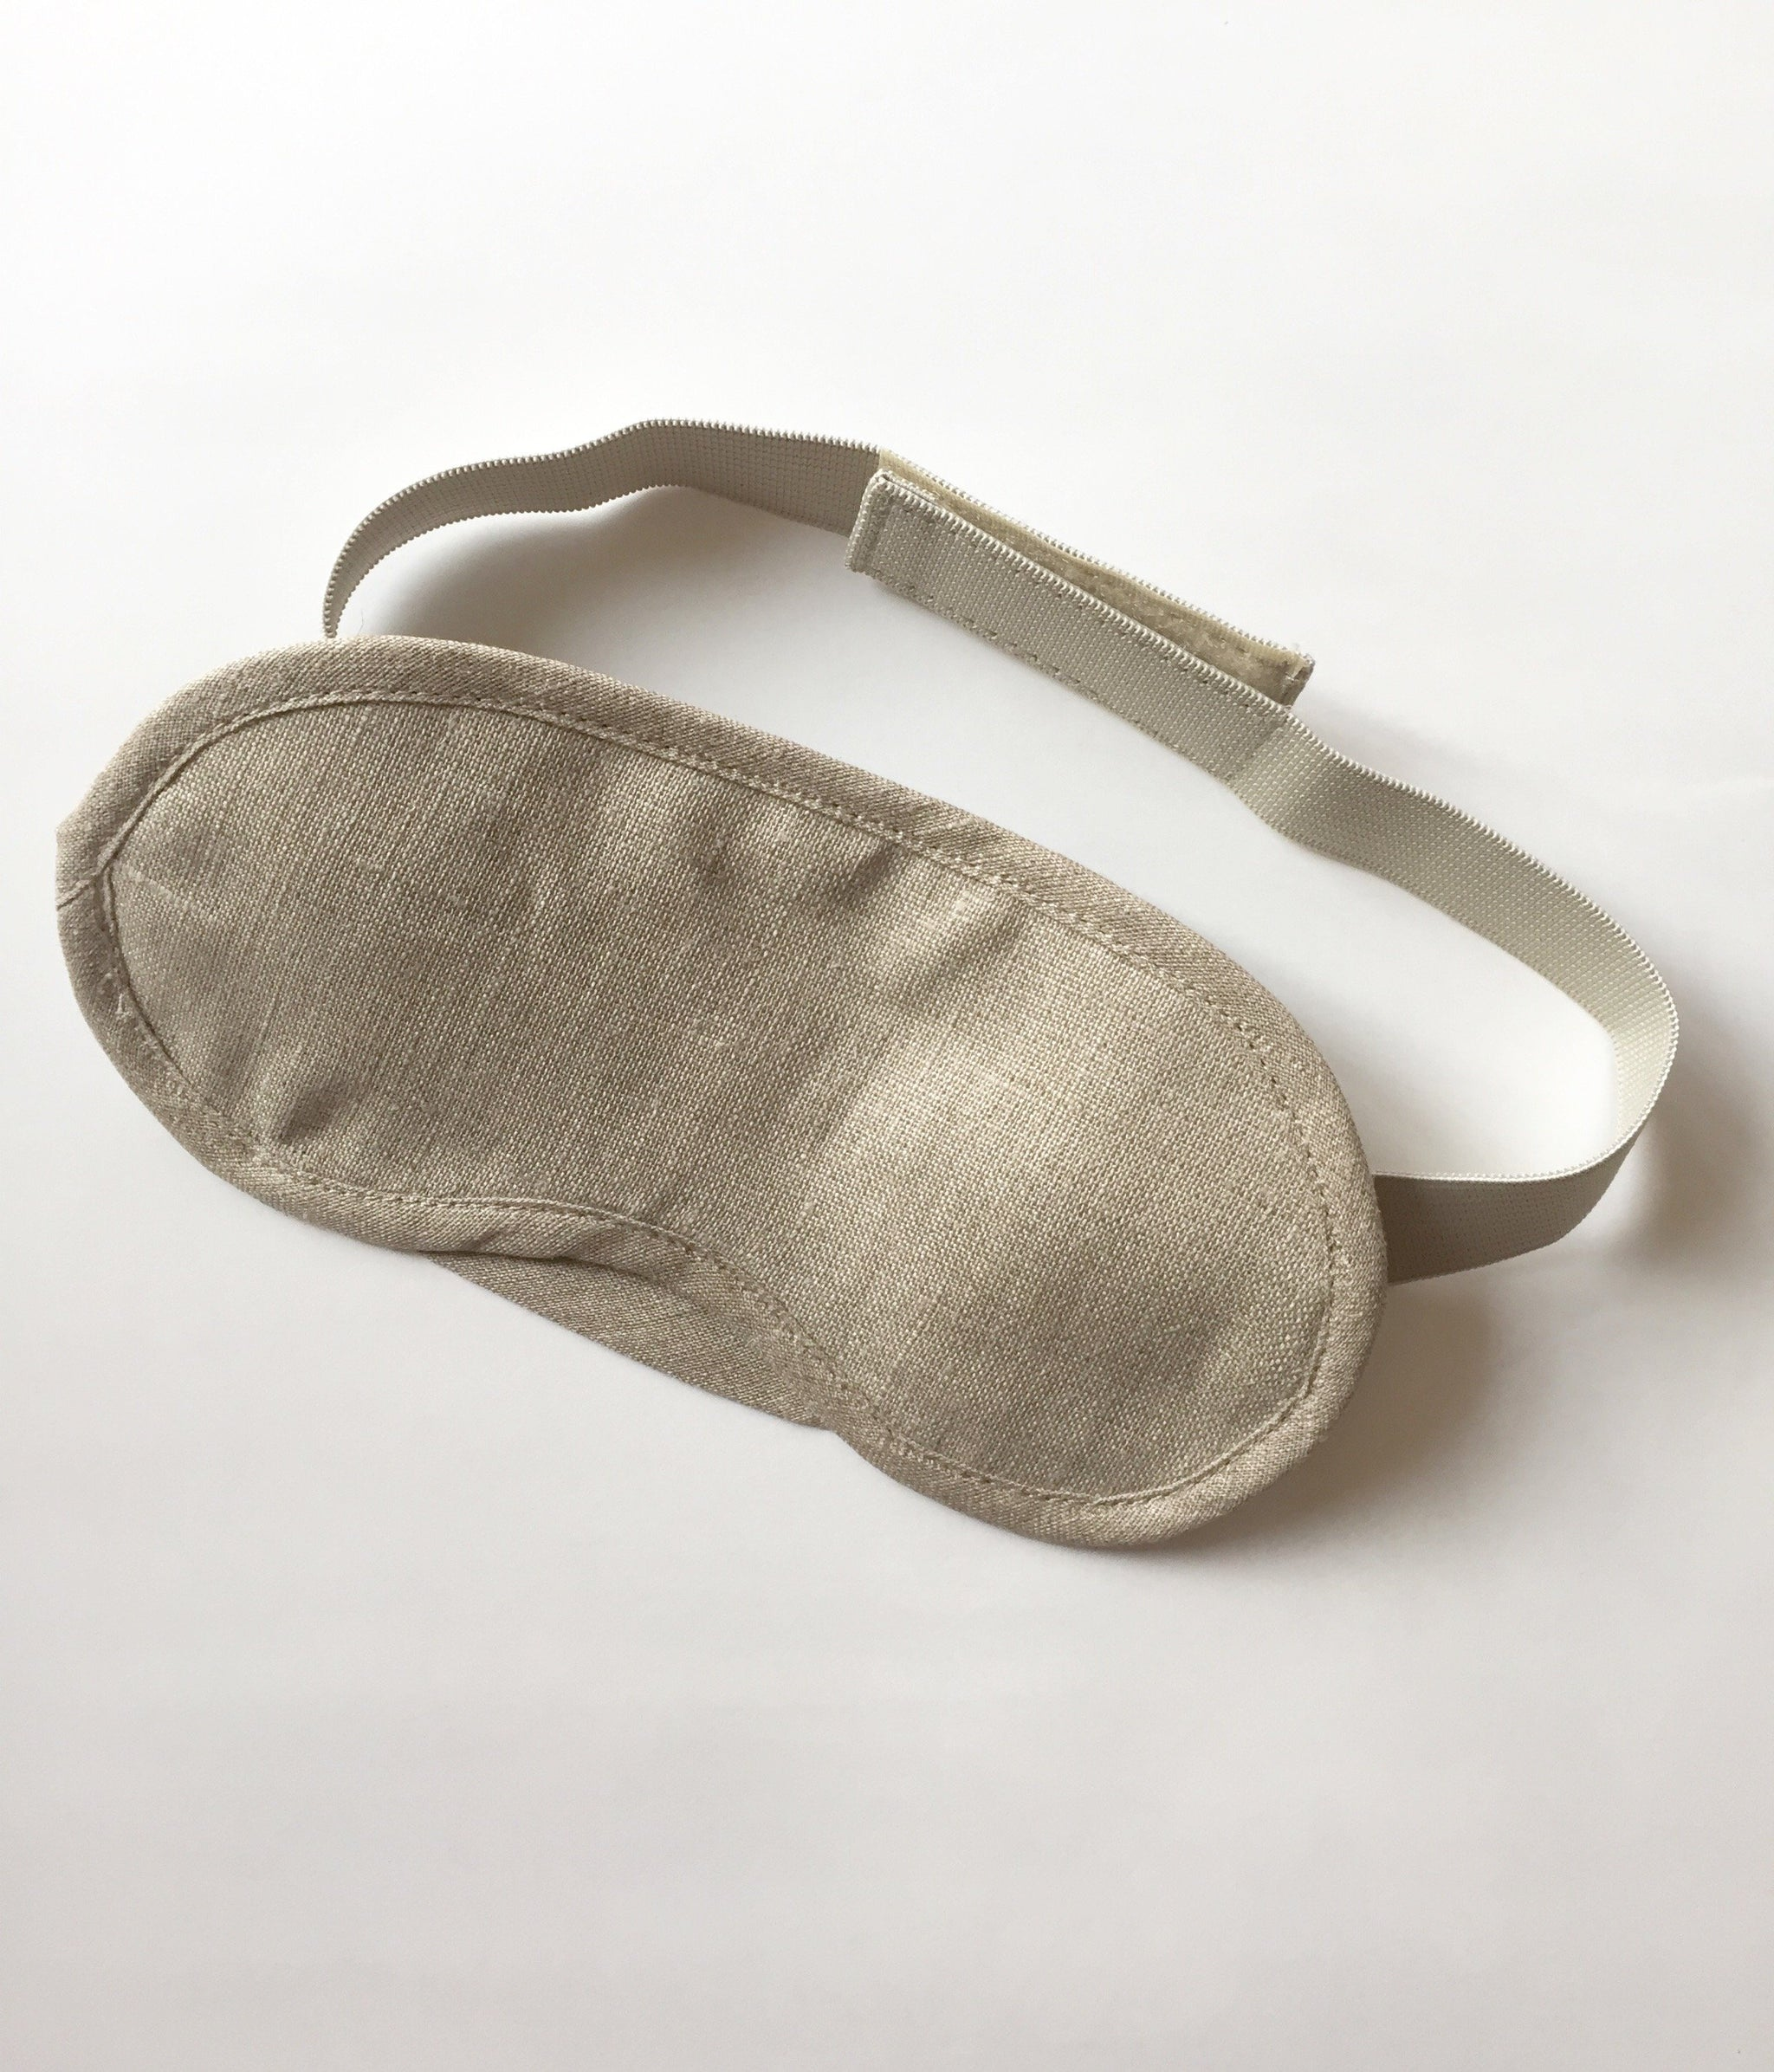 Sleeping Mask by Fog Linen Work in natural linen